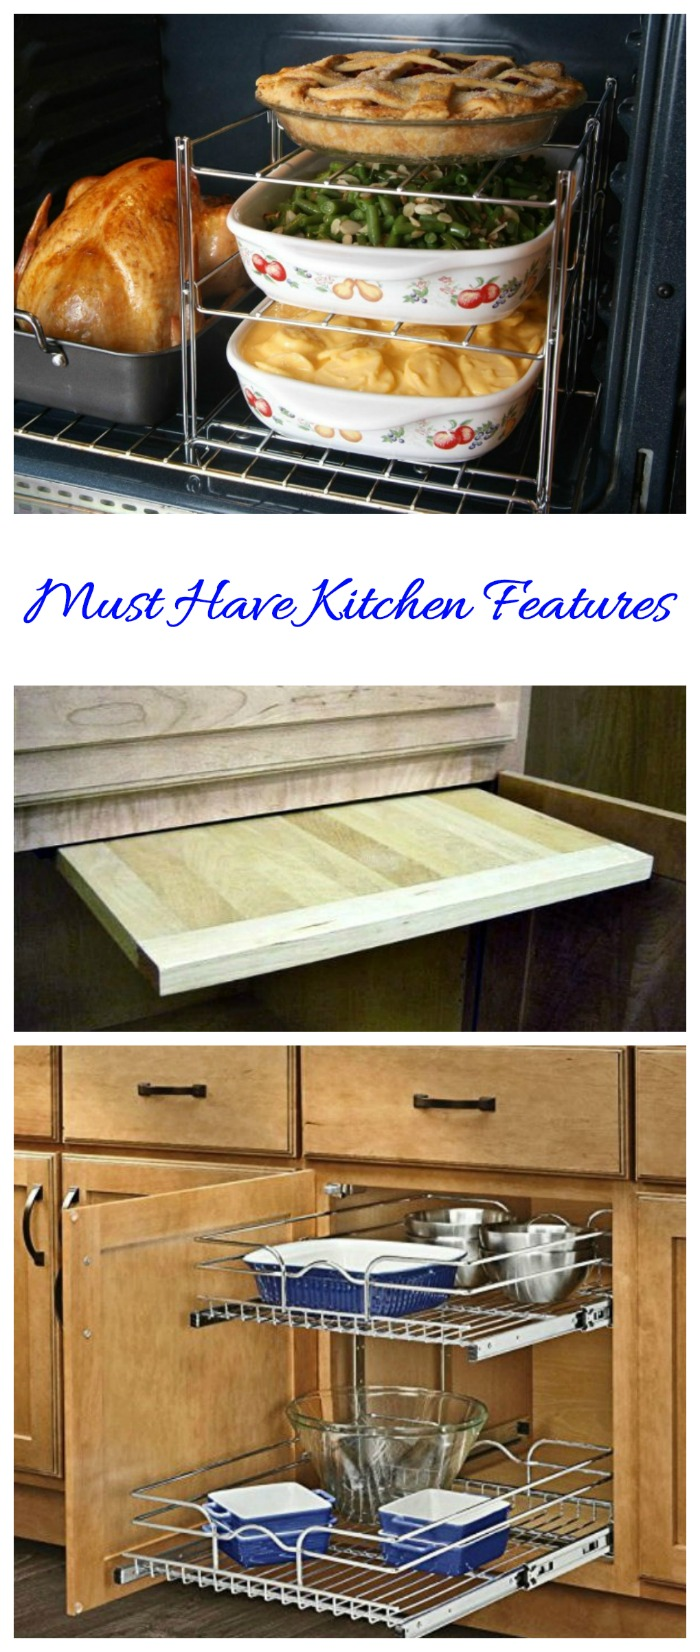 Organize your kitchen space with one of these kitchen must haves.